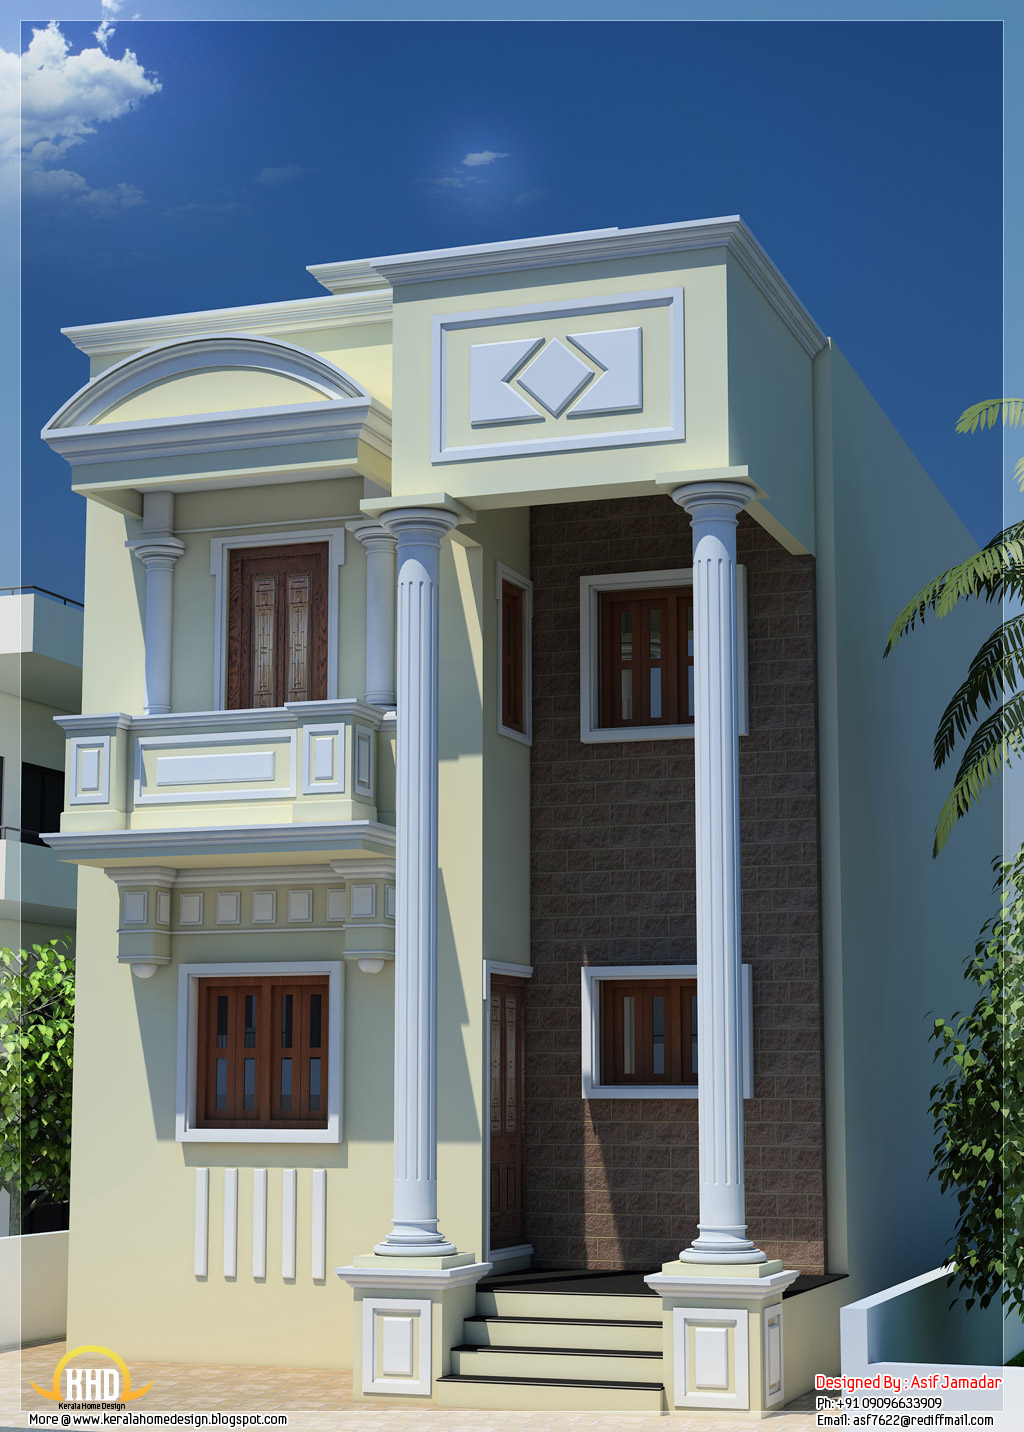 Home Design In India 3 bedroom house designs in india bedroom house designs india 3 bedroom house designs in india Narrow Home Design 1600 Square Feet